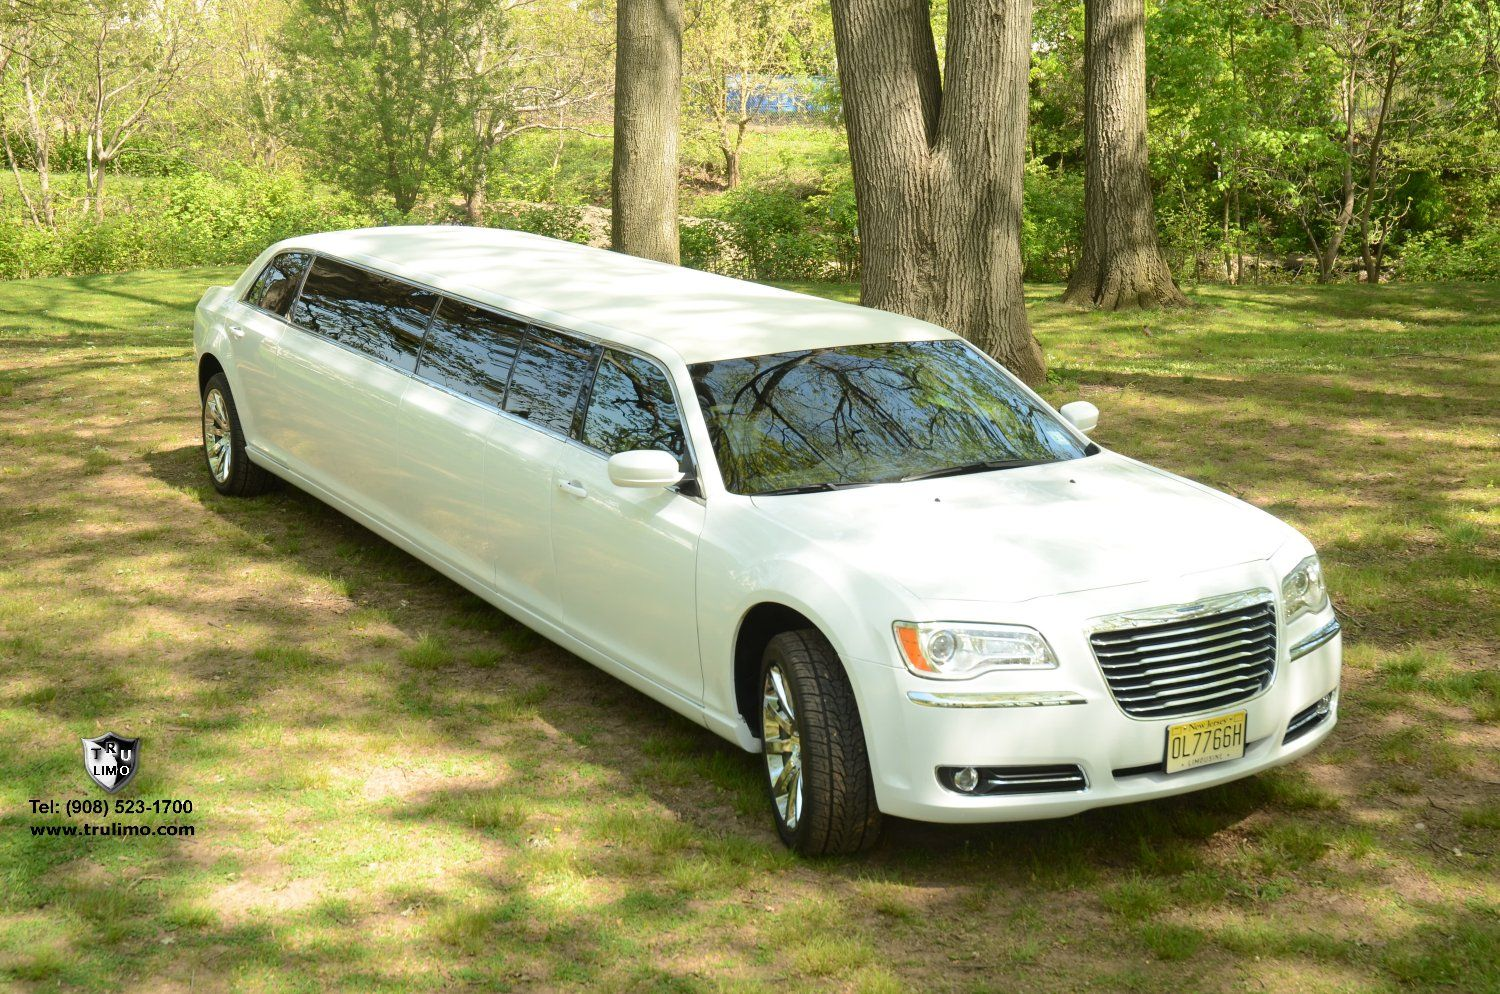 (202) 10 Passenger Chrysler 300 With Jet Doors (White) Exterior 10 » TRU LIMO & 202) 10 Passenger Chrysler 300 With Jet Doors (White) Exterior 10 ... Pezcame.Com